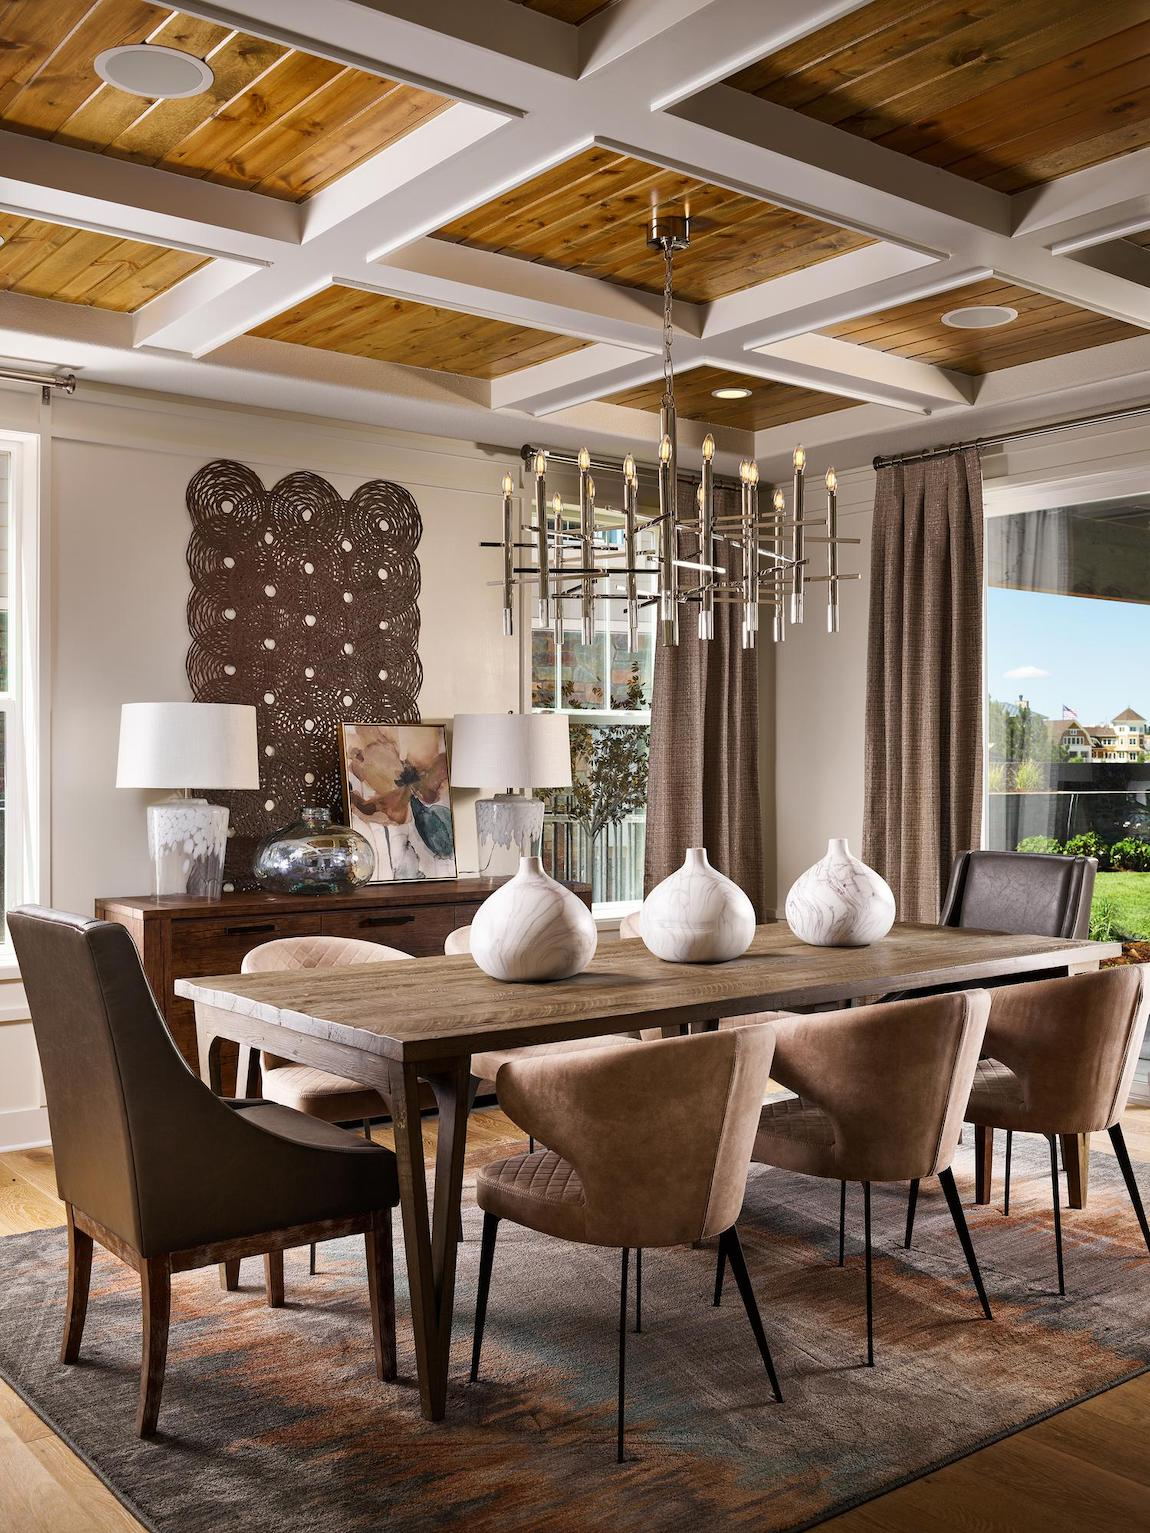 Striking dining room design featuring coffered ceiling